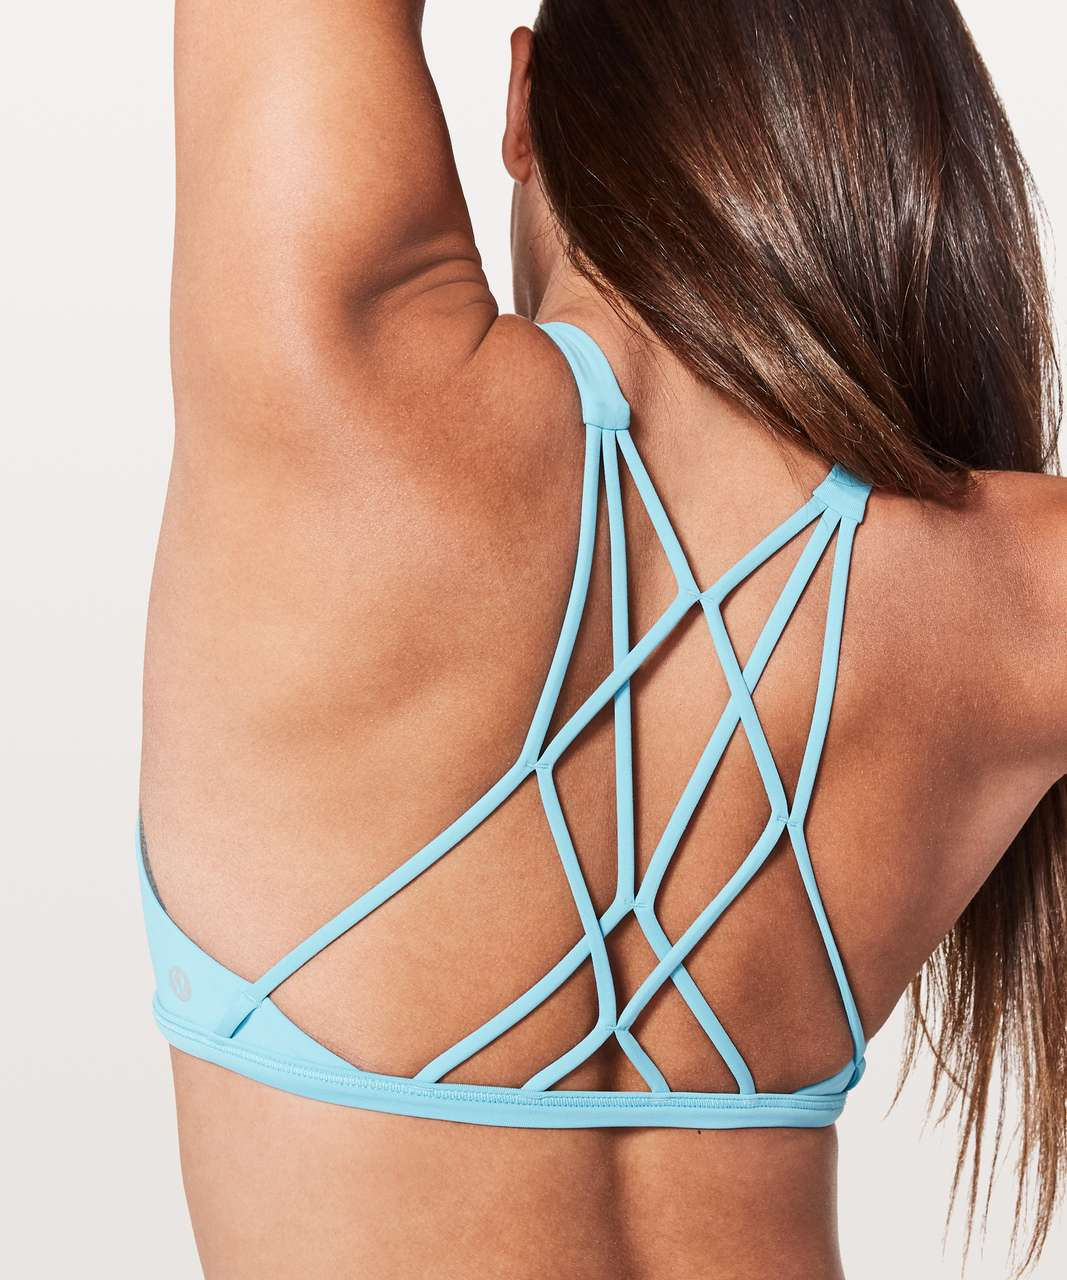 Lululemon Free To Be Zen Bra - Eton Blue